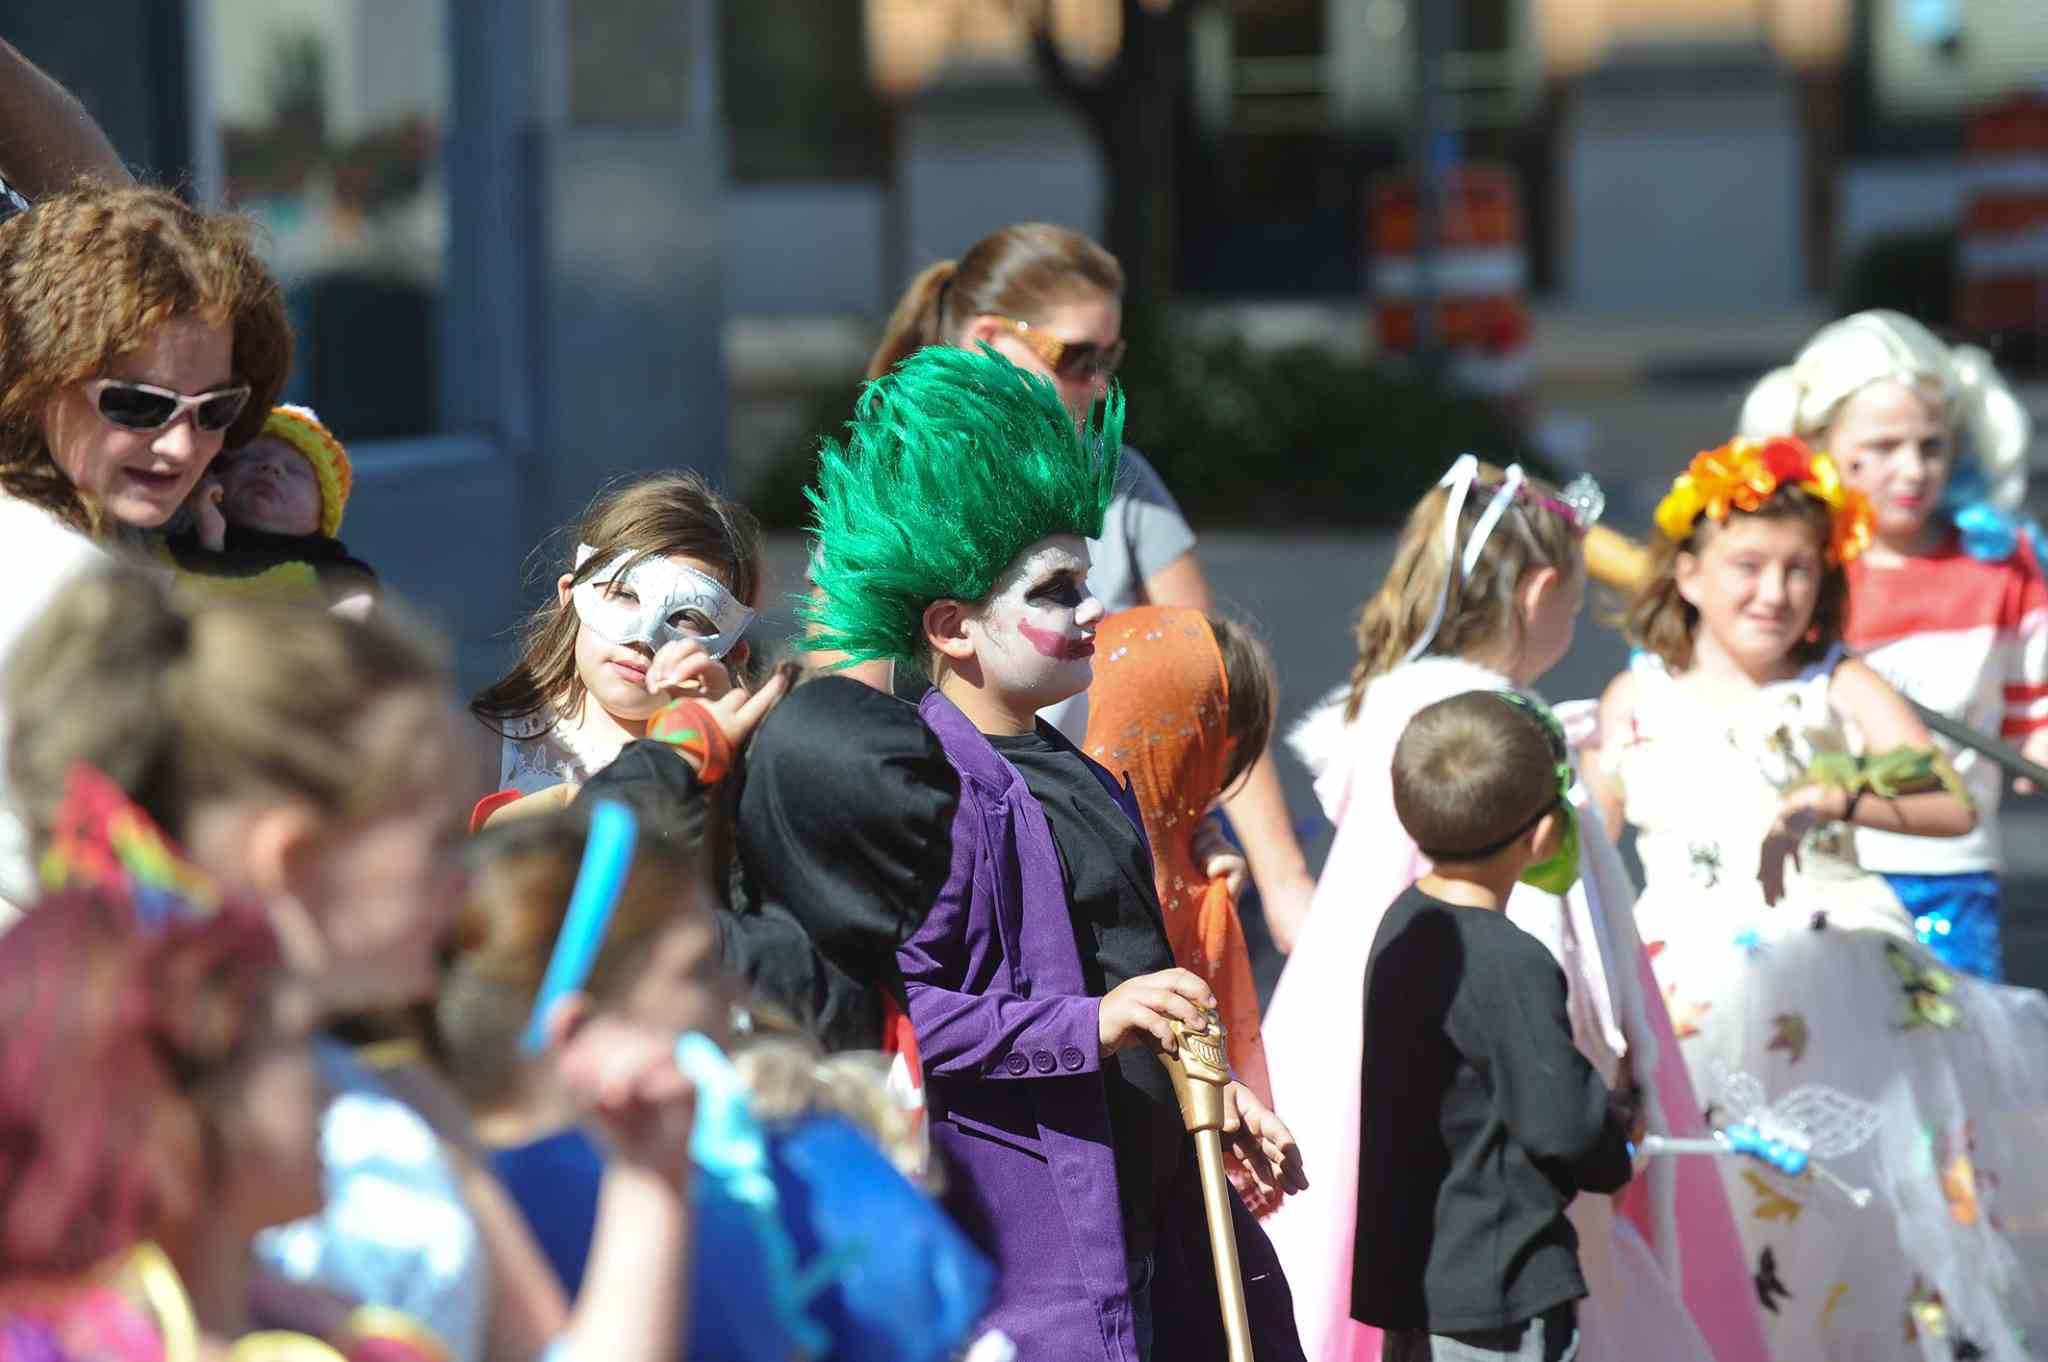 Costumed kids at Boo on Bell